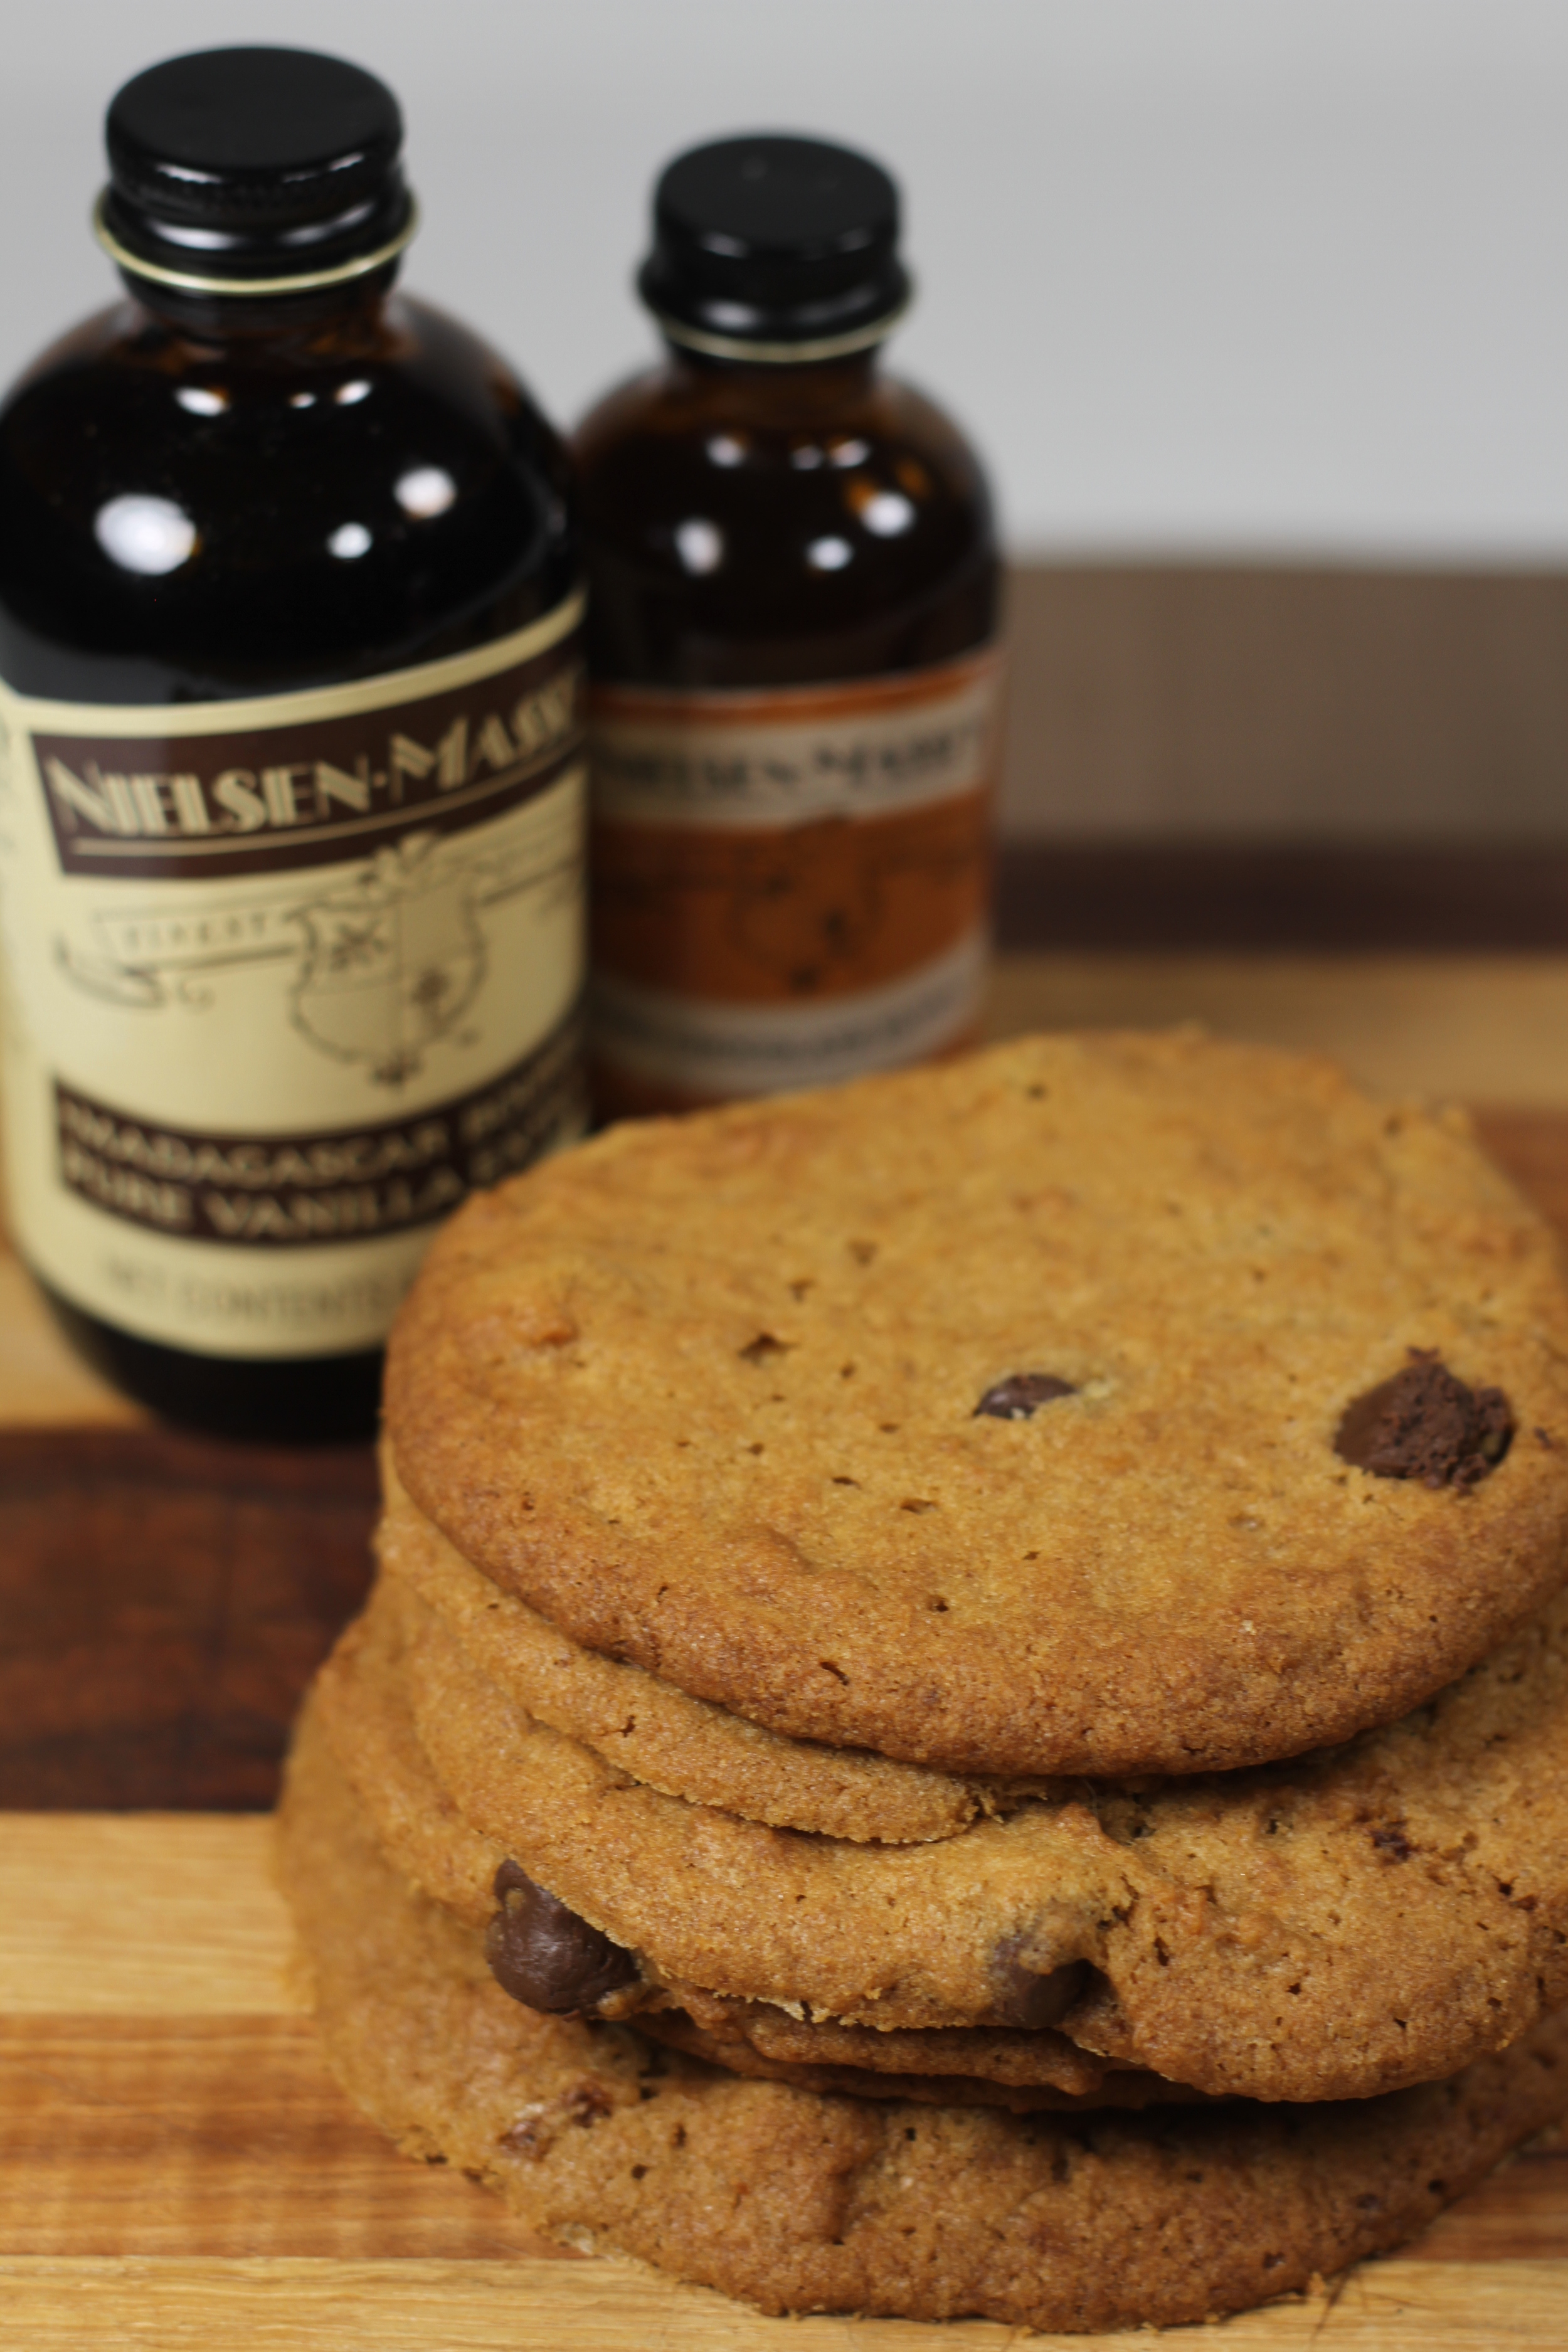 Nielsen-Massey vanilla & chocolate extracts were used.